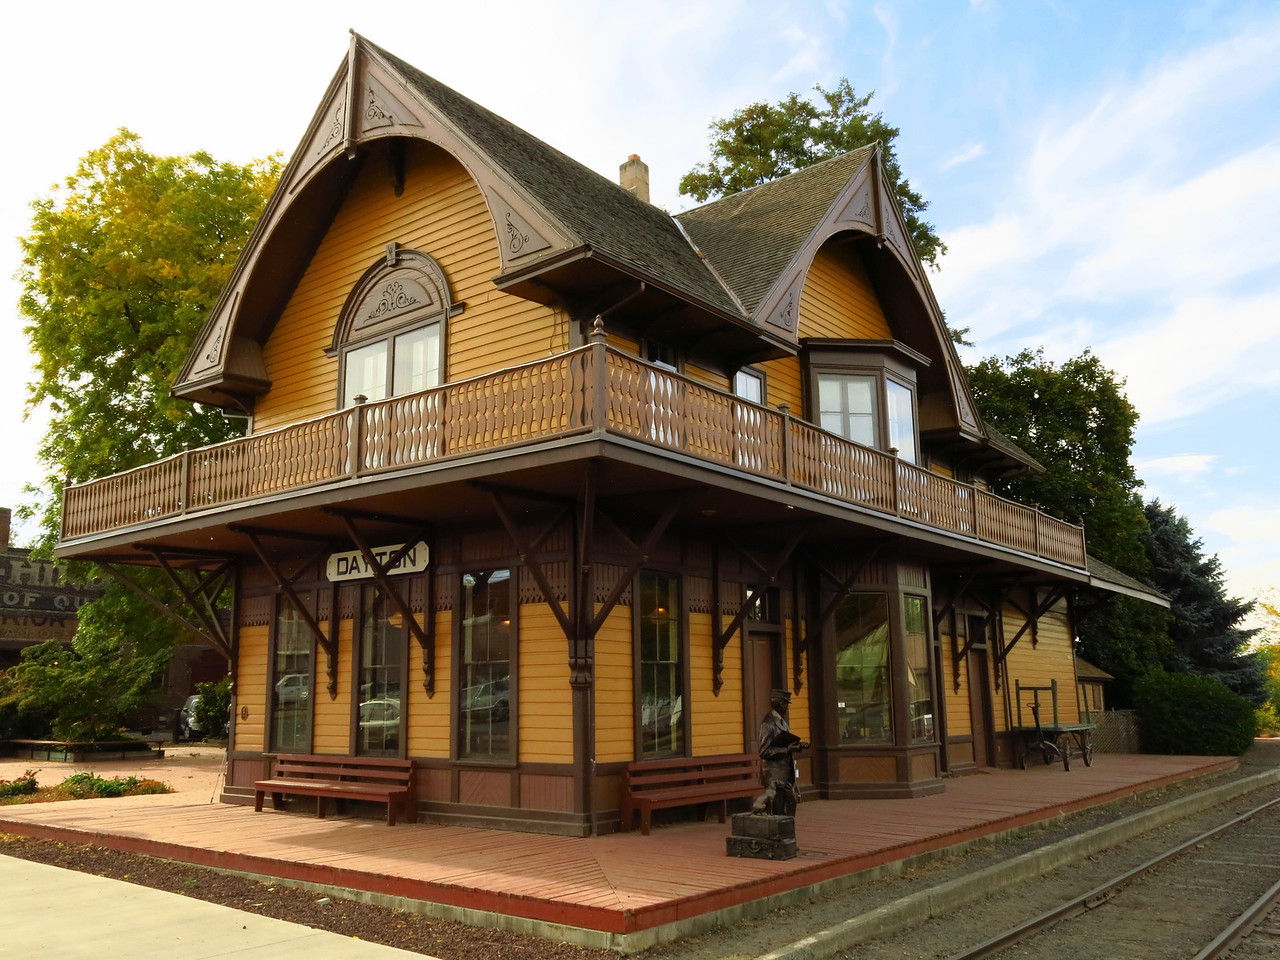 The Historic Dayton Depot is one of the highlights of the volkswalk.